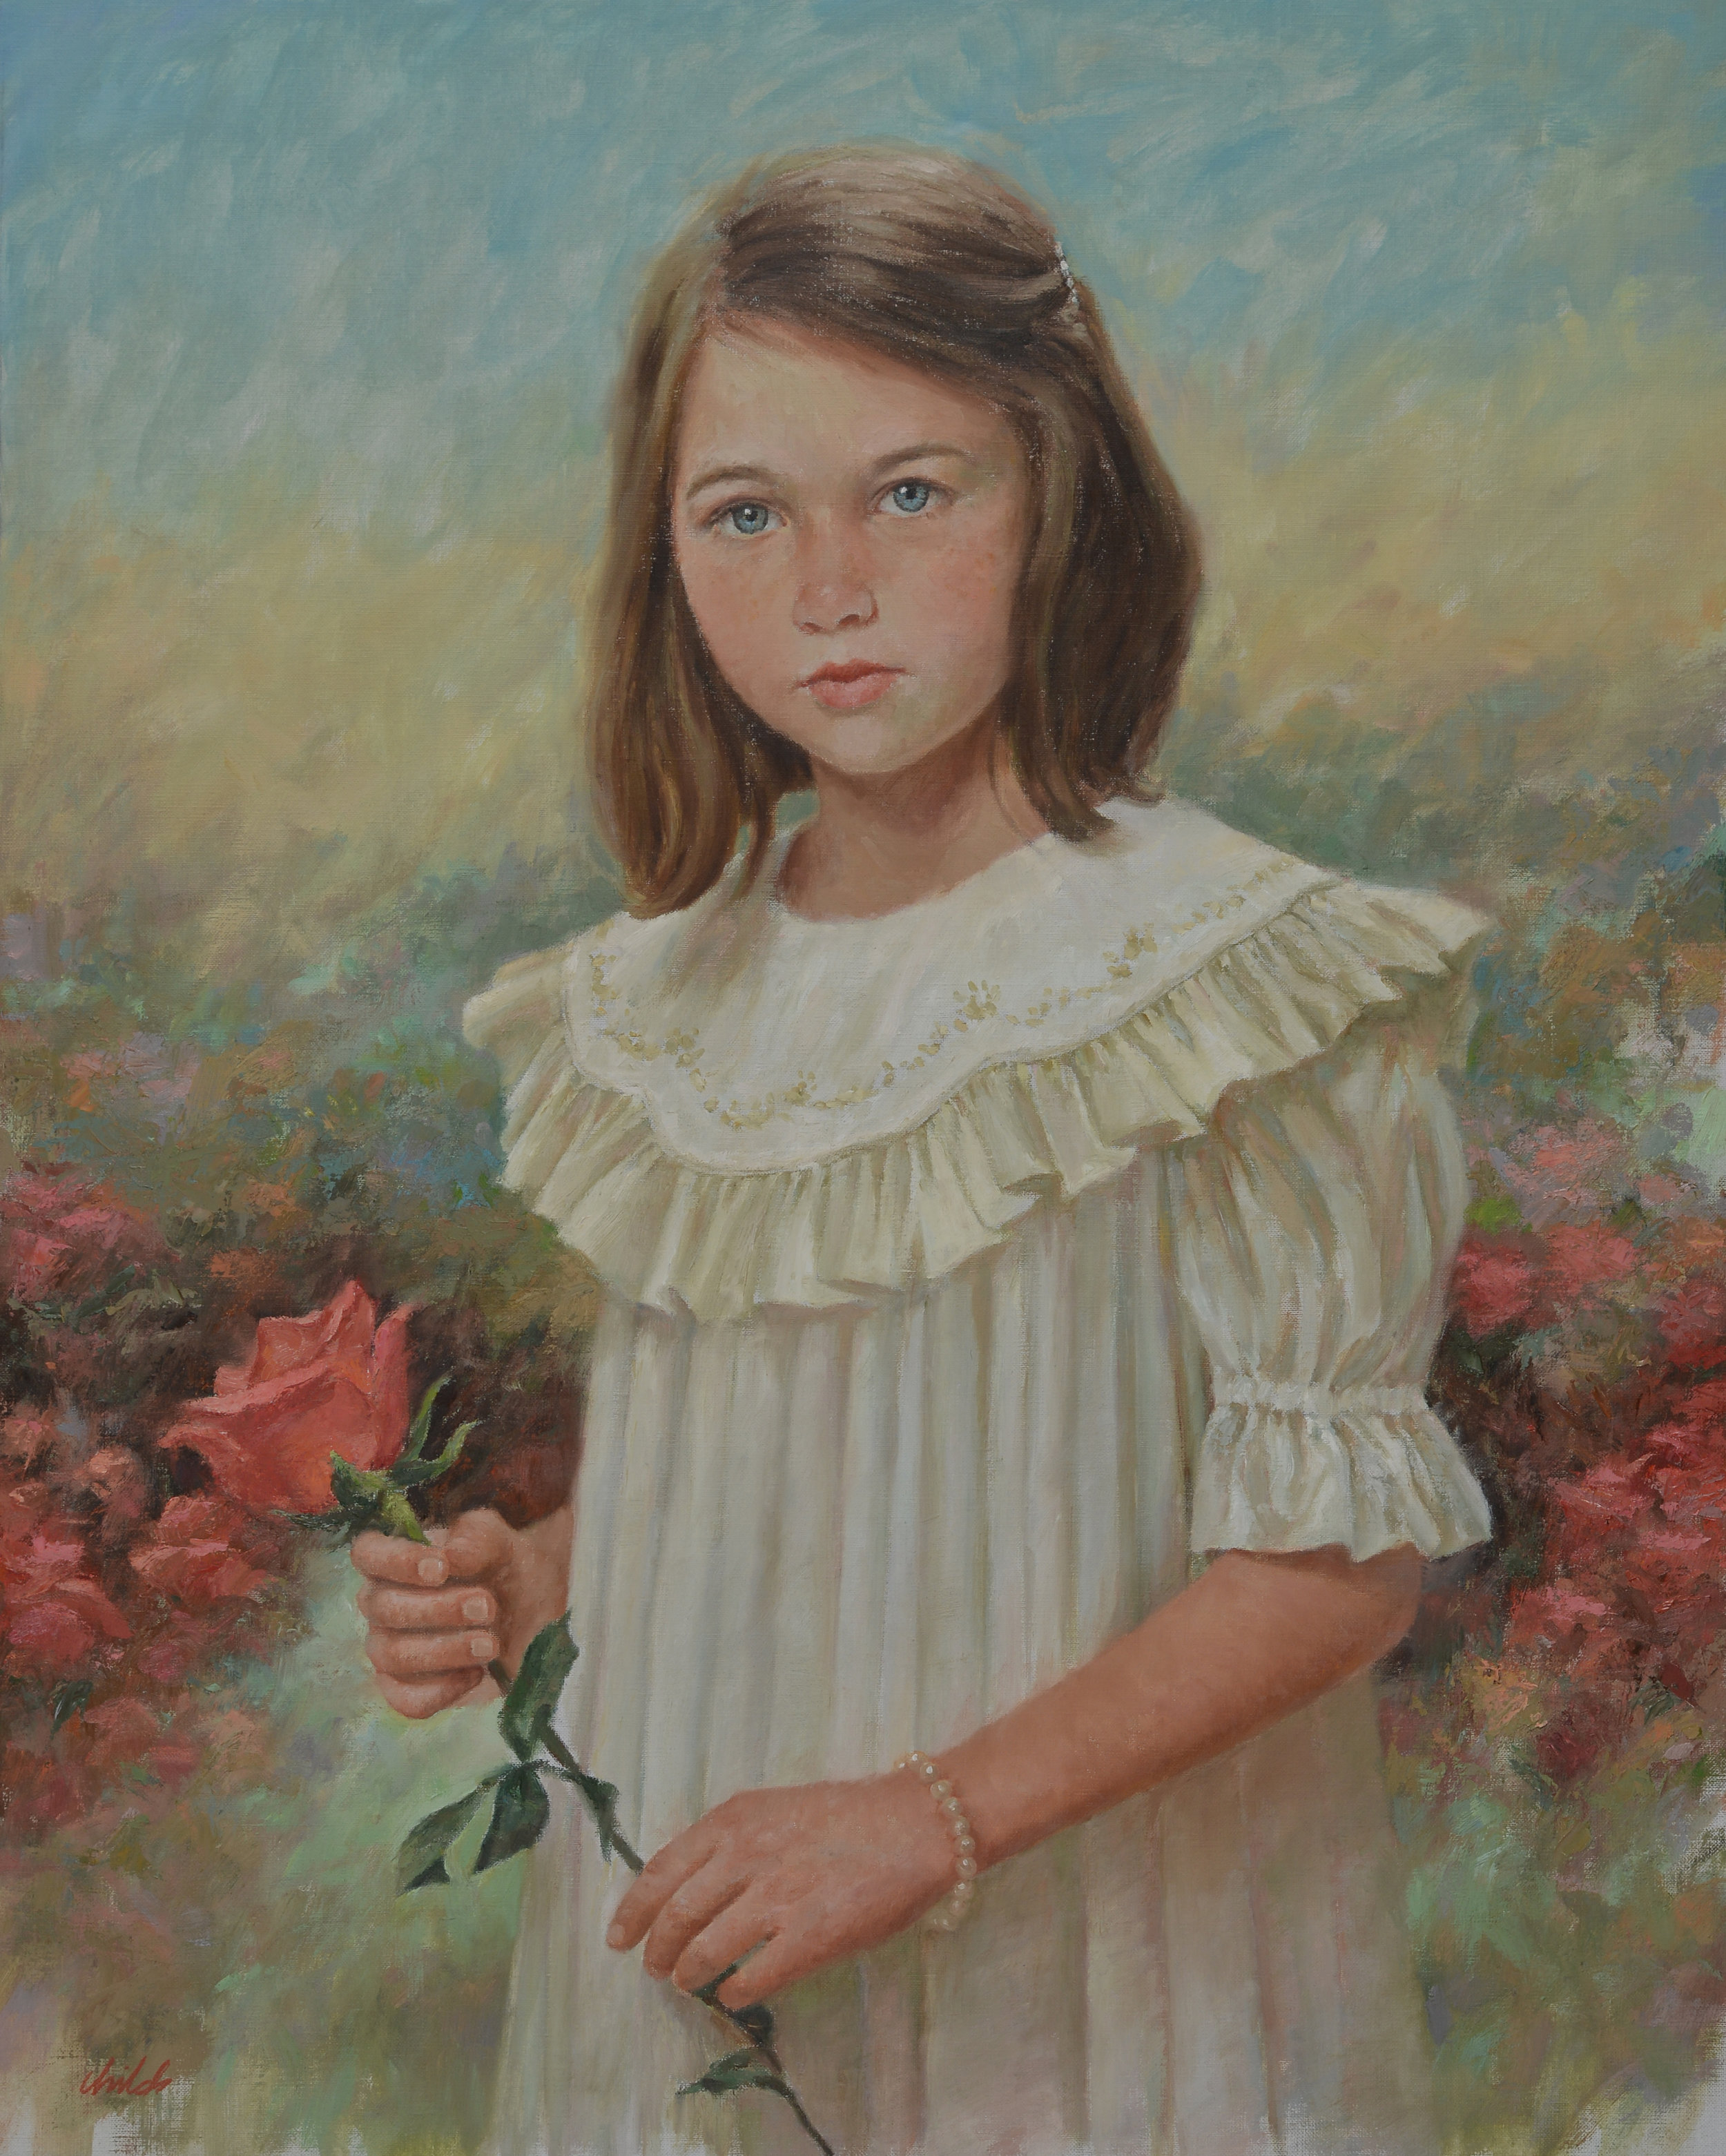 Girl in White Dress & Flower - 24x30